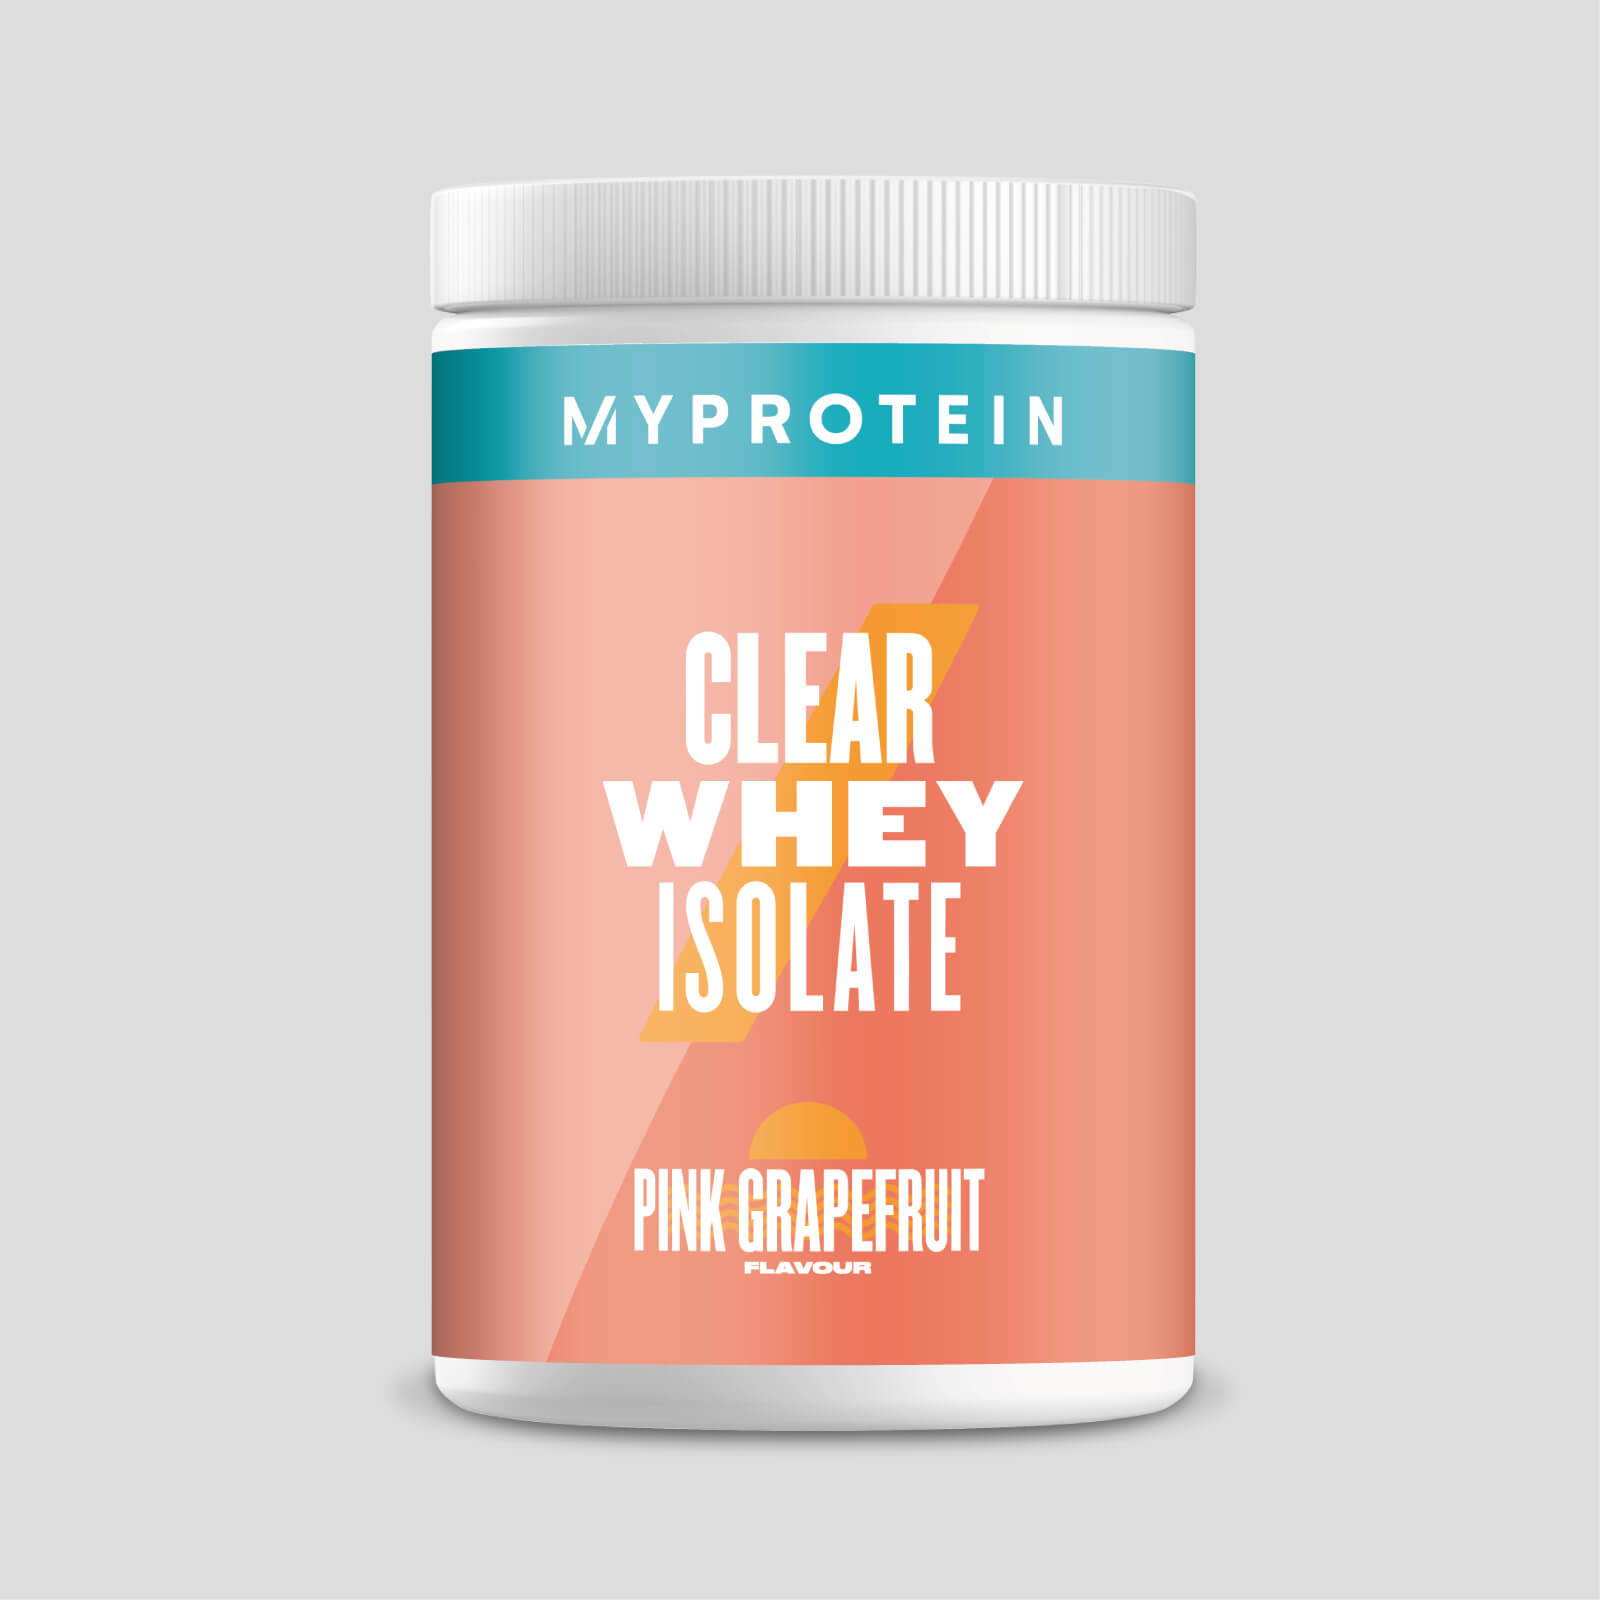 Myprotein Clear Whey Isolate, Pink Grapefruit, 20 Servings - ALT